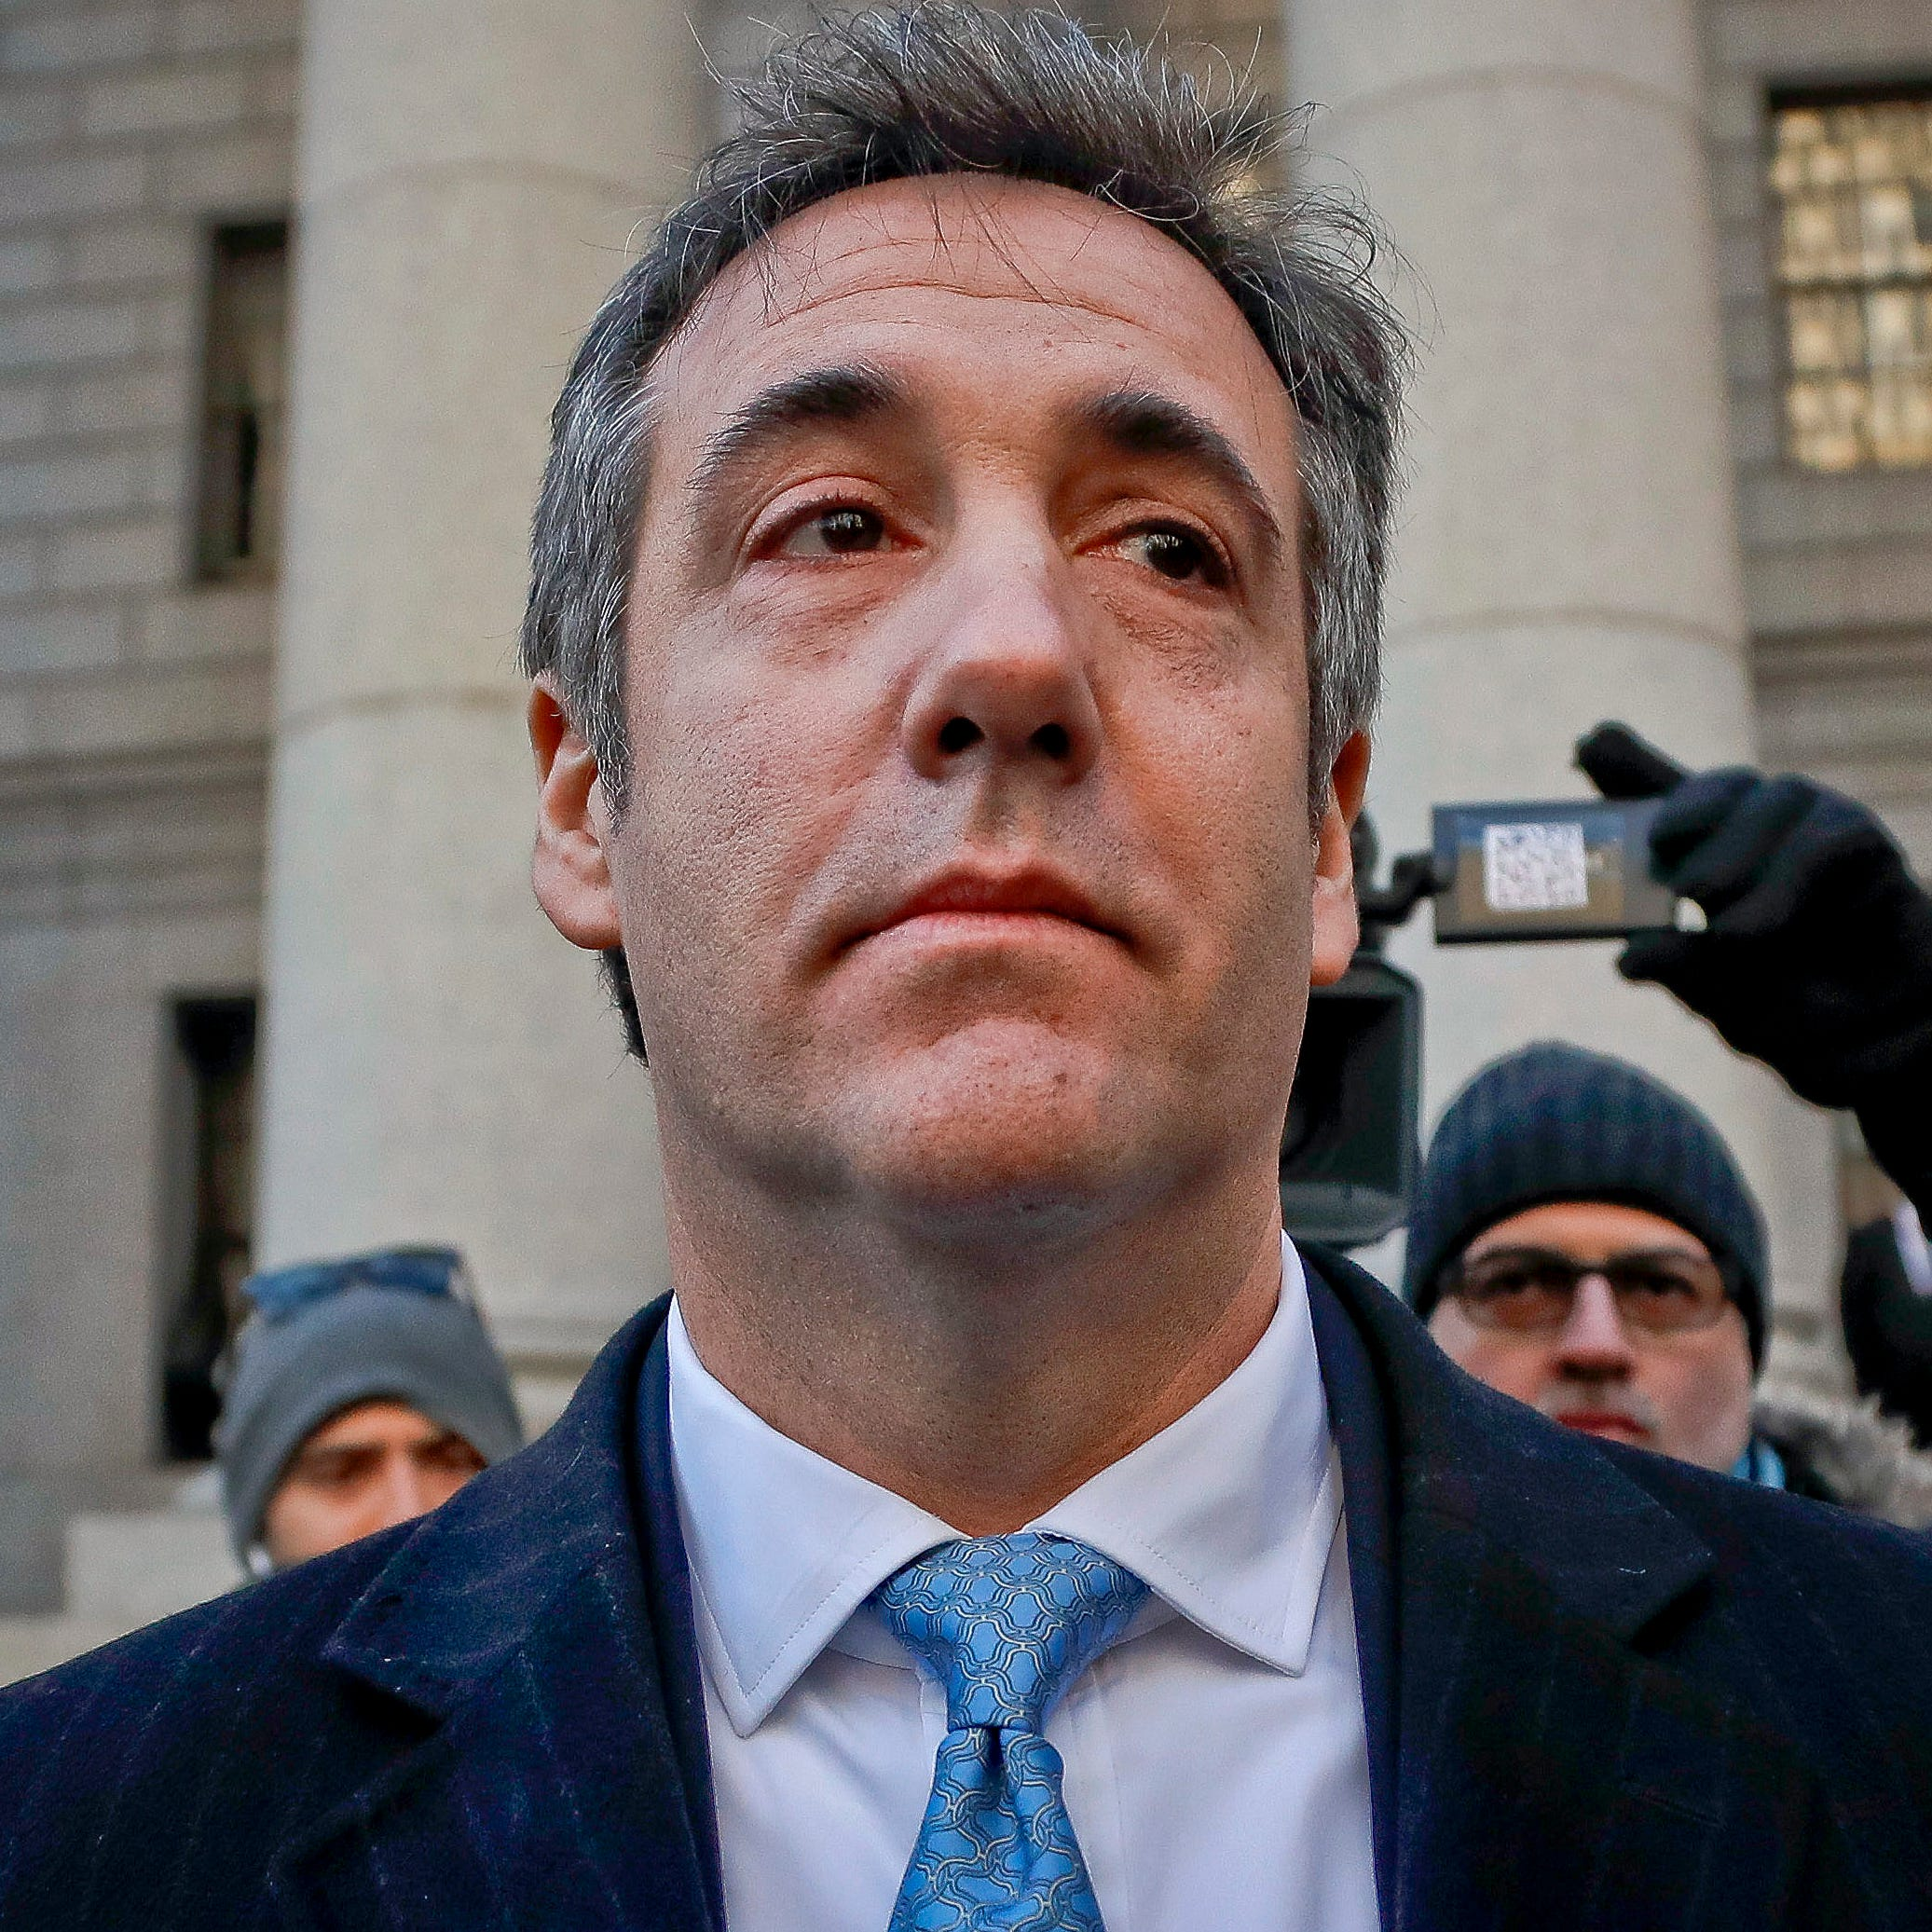 President Donald Trump's former personal lawyer Michael Cohen pictured walking out of federal court in New York.